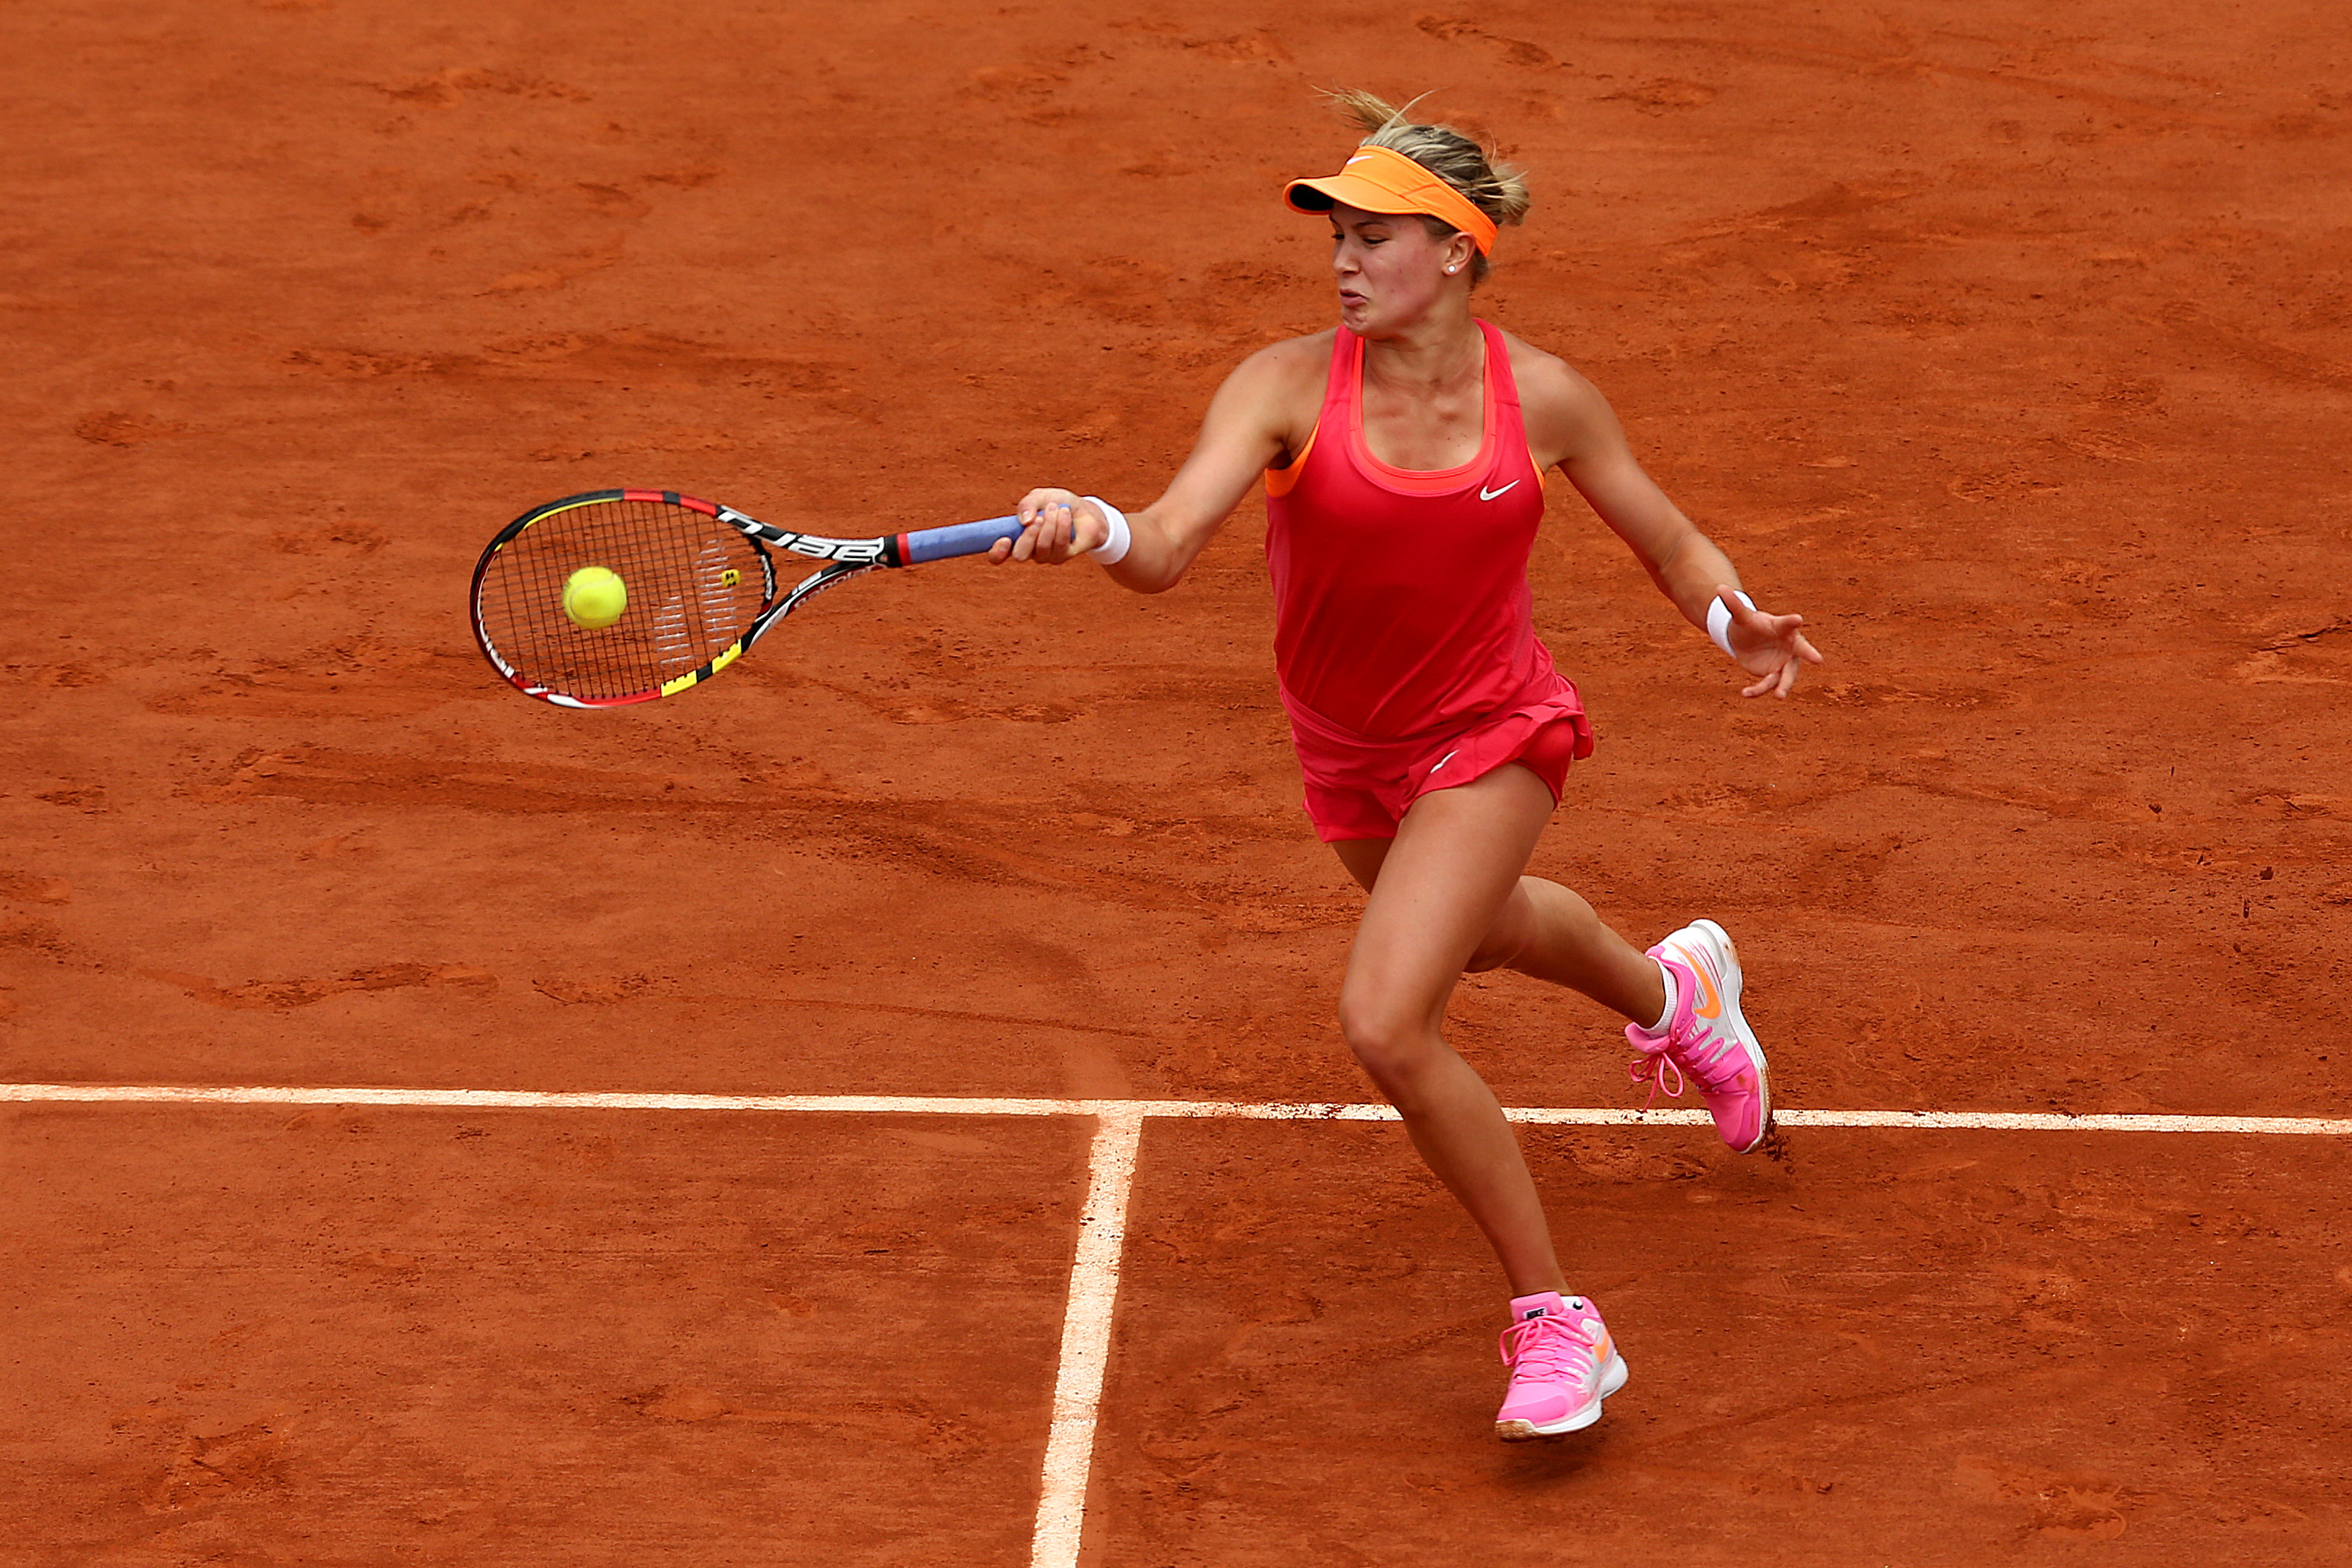 Bouchard was perfect in Nike pink at the French Open.